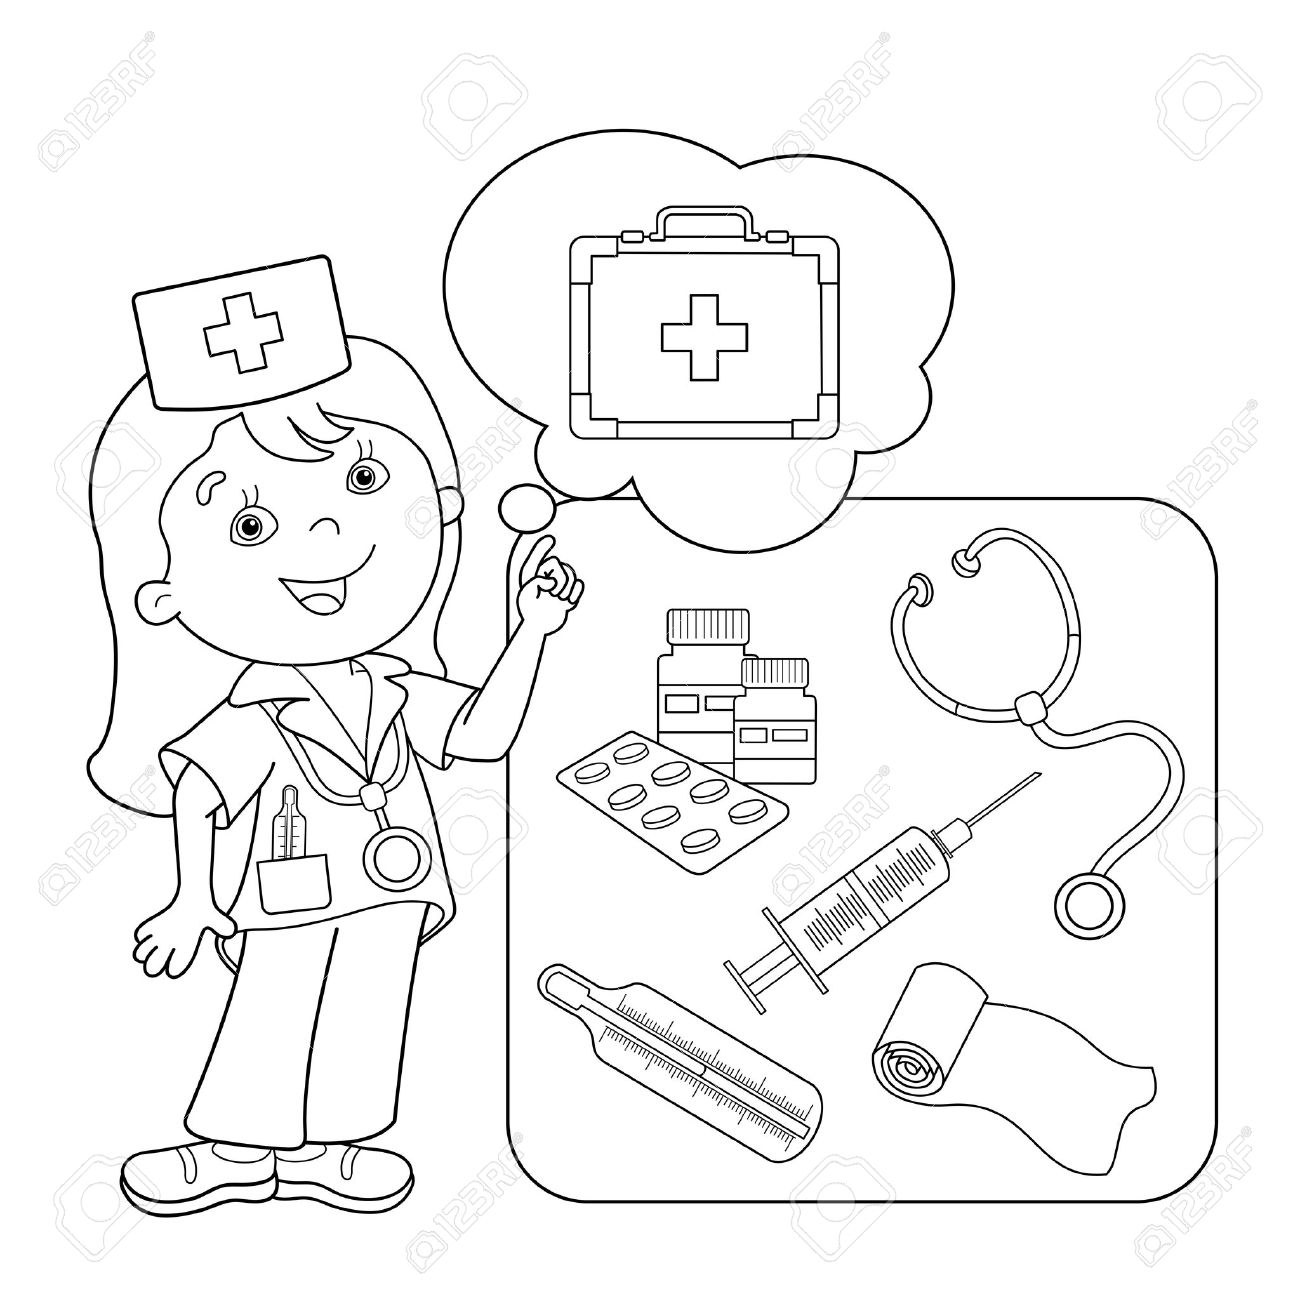 worksheet First Aid Worksheets first aid kit coloring pages eliolera com page outline of cartoon doctor with set